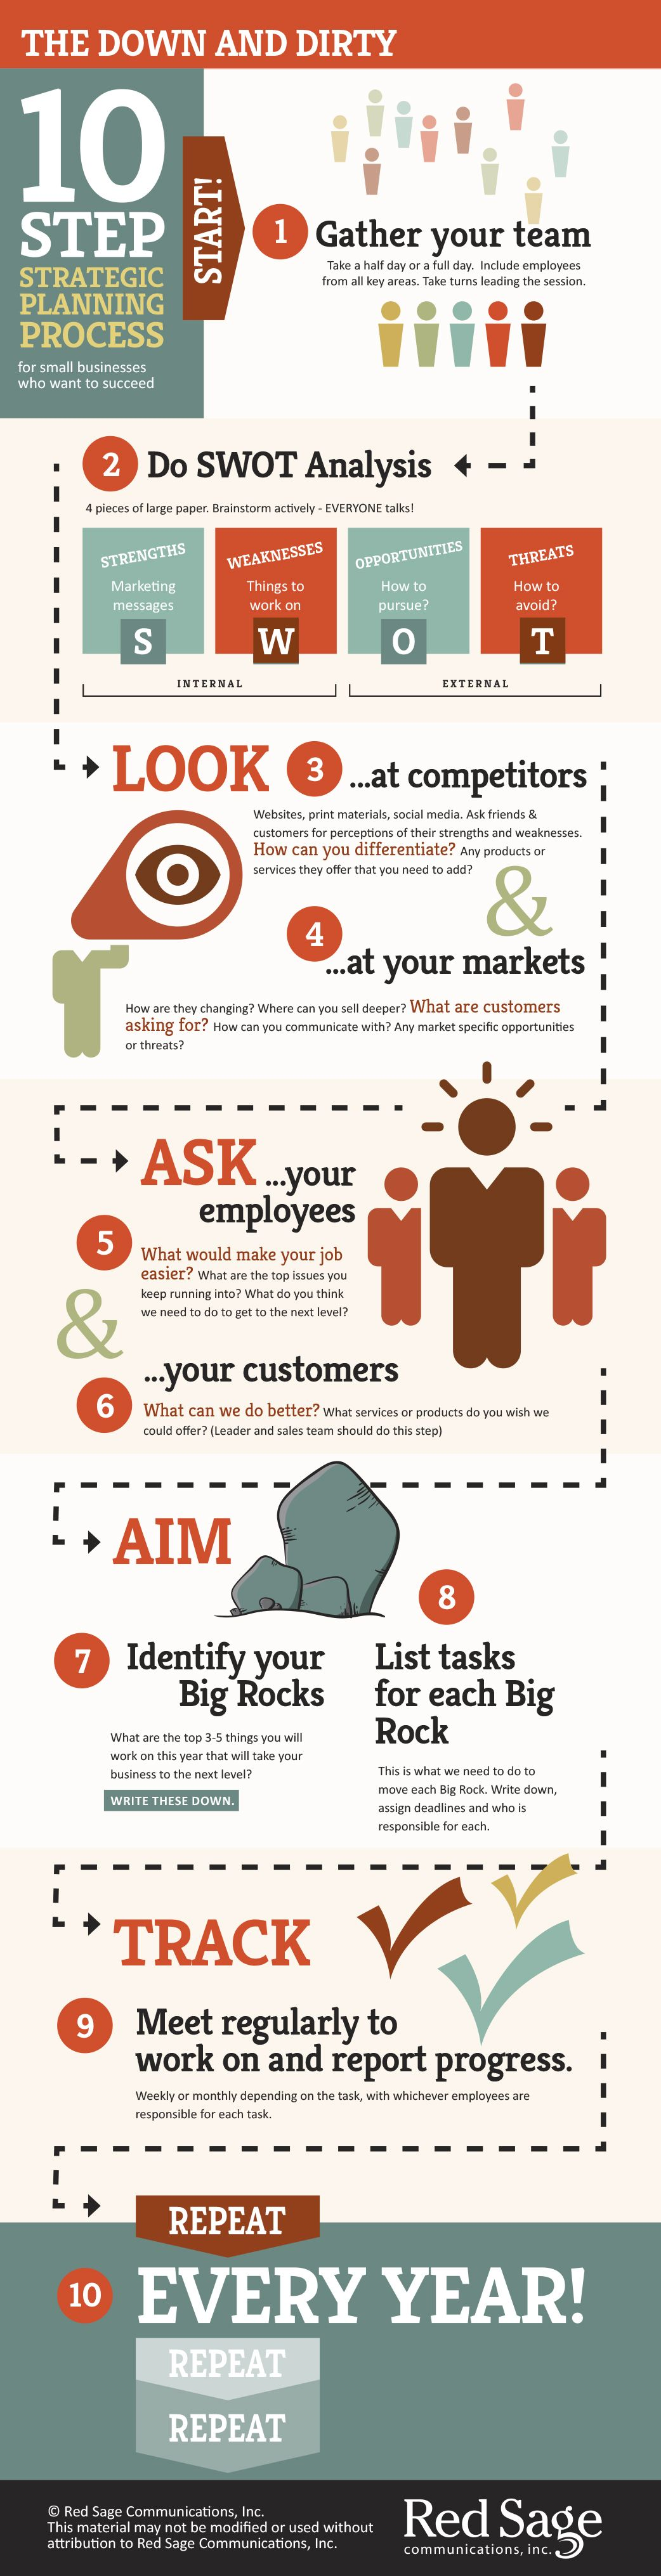 10 step strategic planning process for small business infographic a